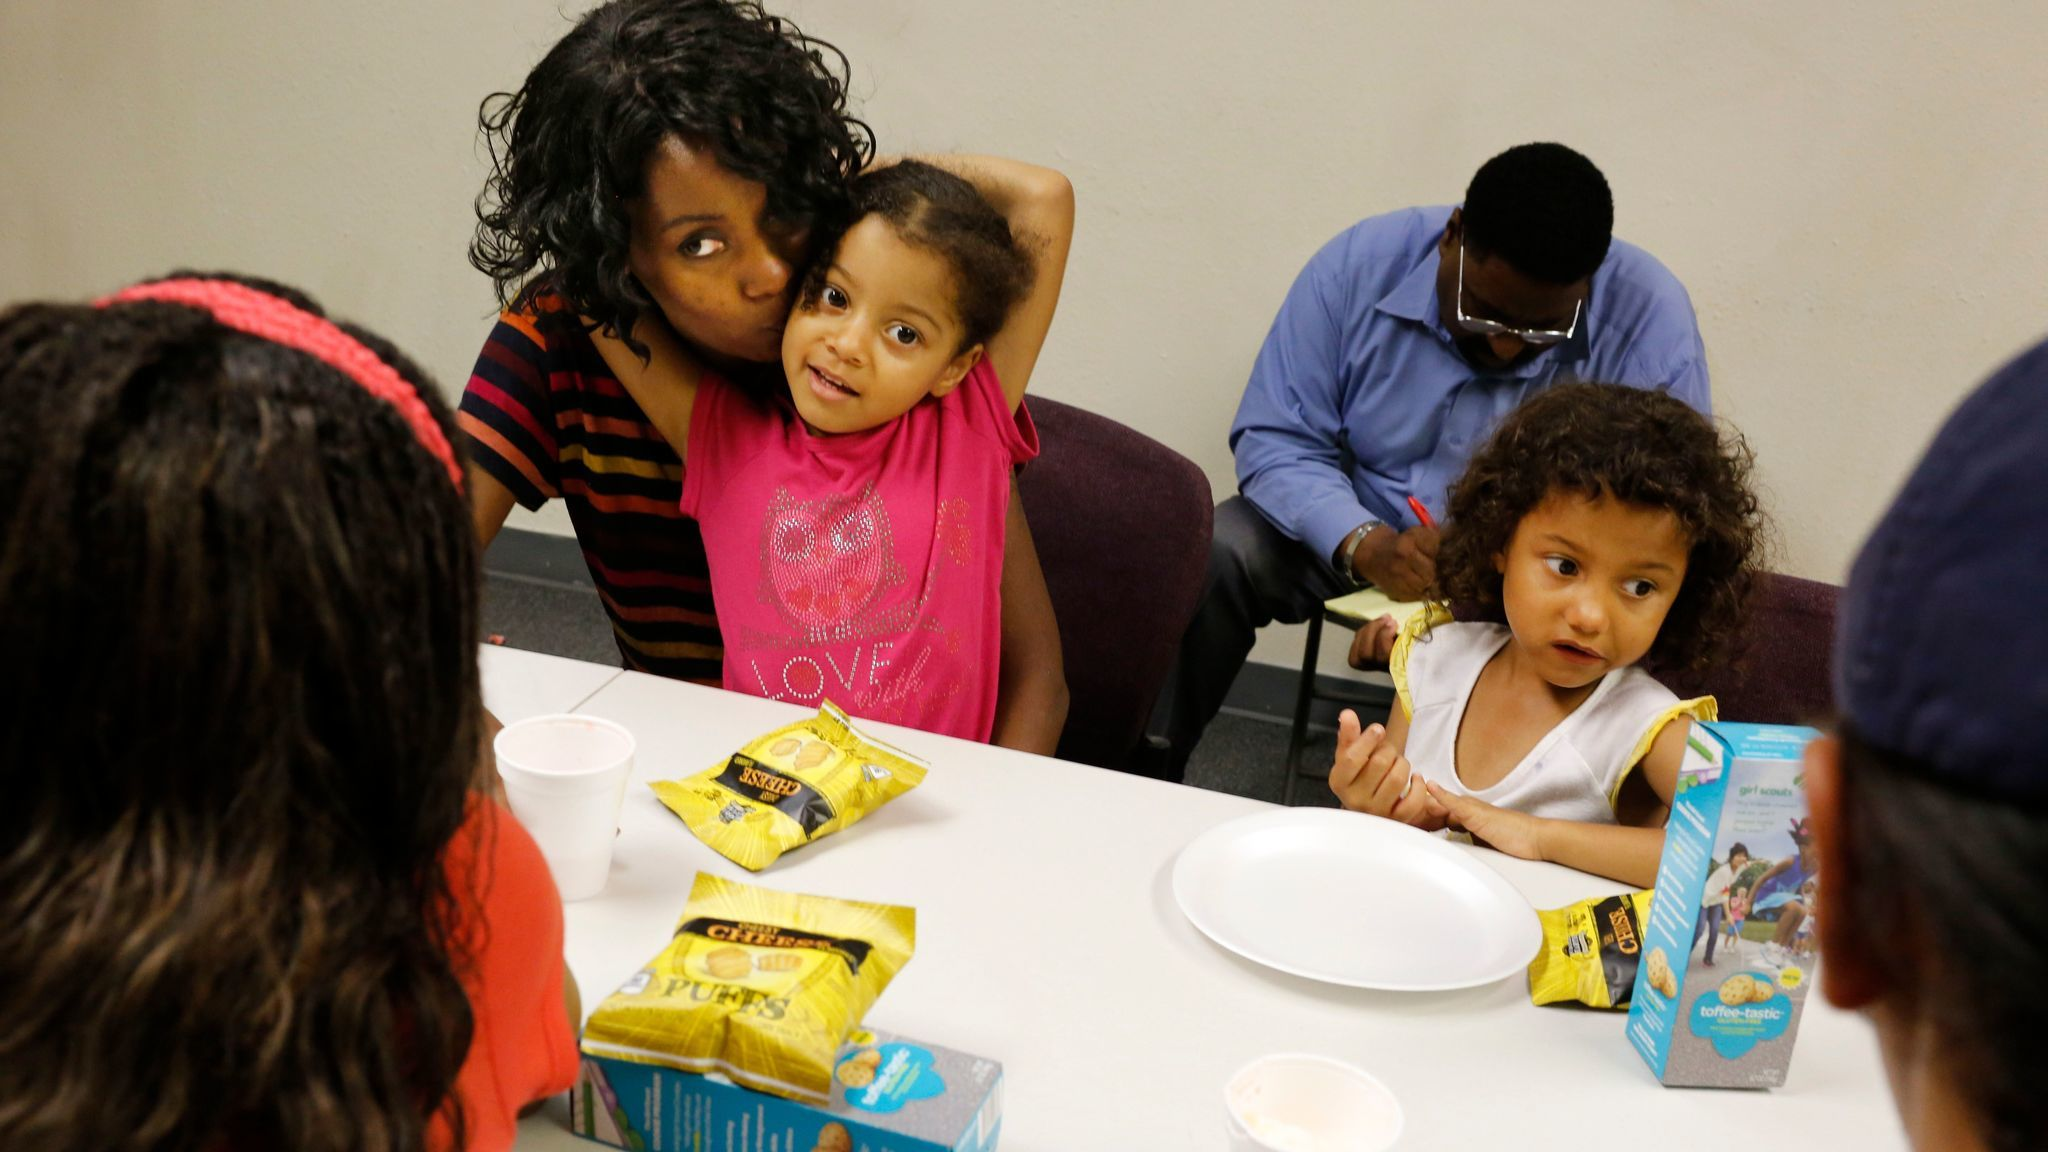 At the class, Baker shared a meal with her children.